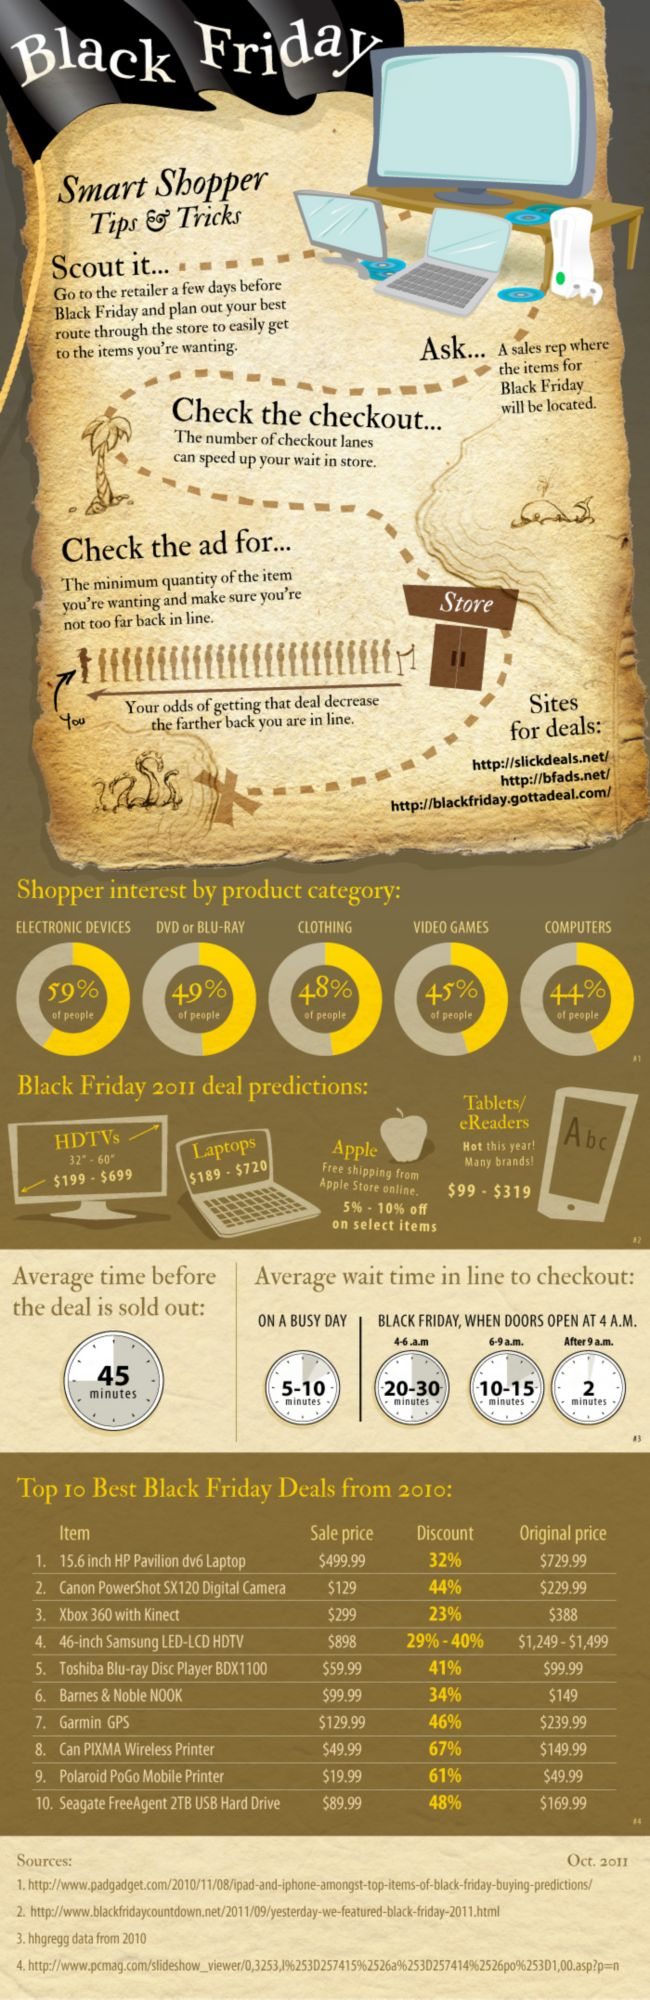 Black Friday Smart Shopper Tips and Tricks brought to you by hhgregg